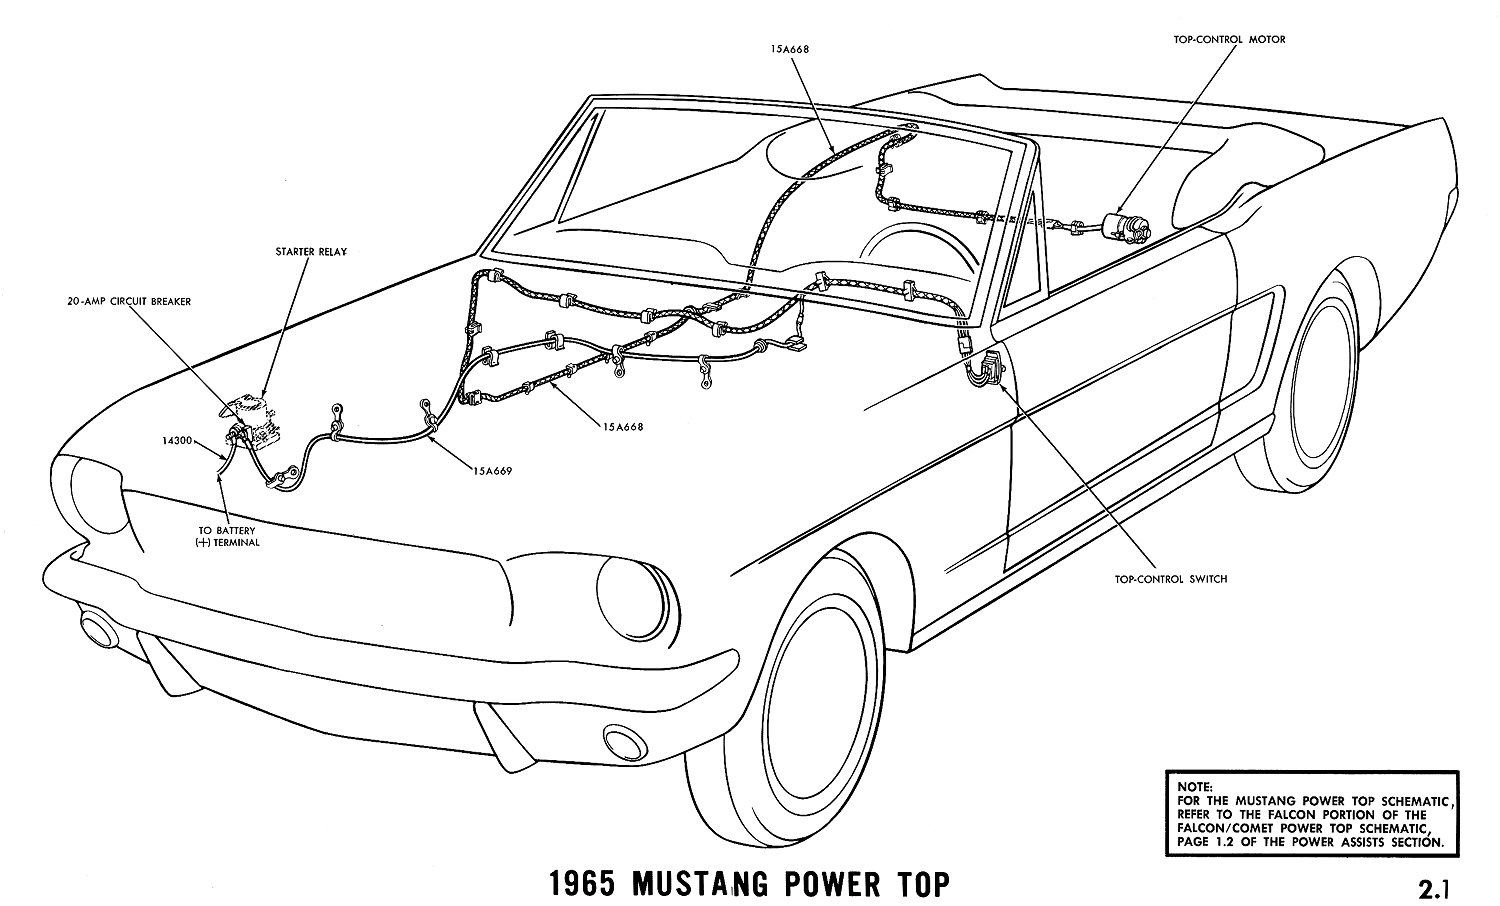 1965 Mustang Wiring Diagrams Average Joe Restoration 68 Turn Signal Switch Diagram Power Top Pictorial Or Schematic